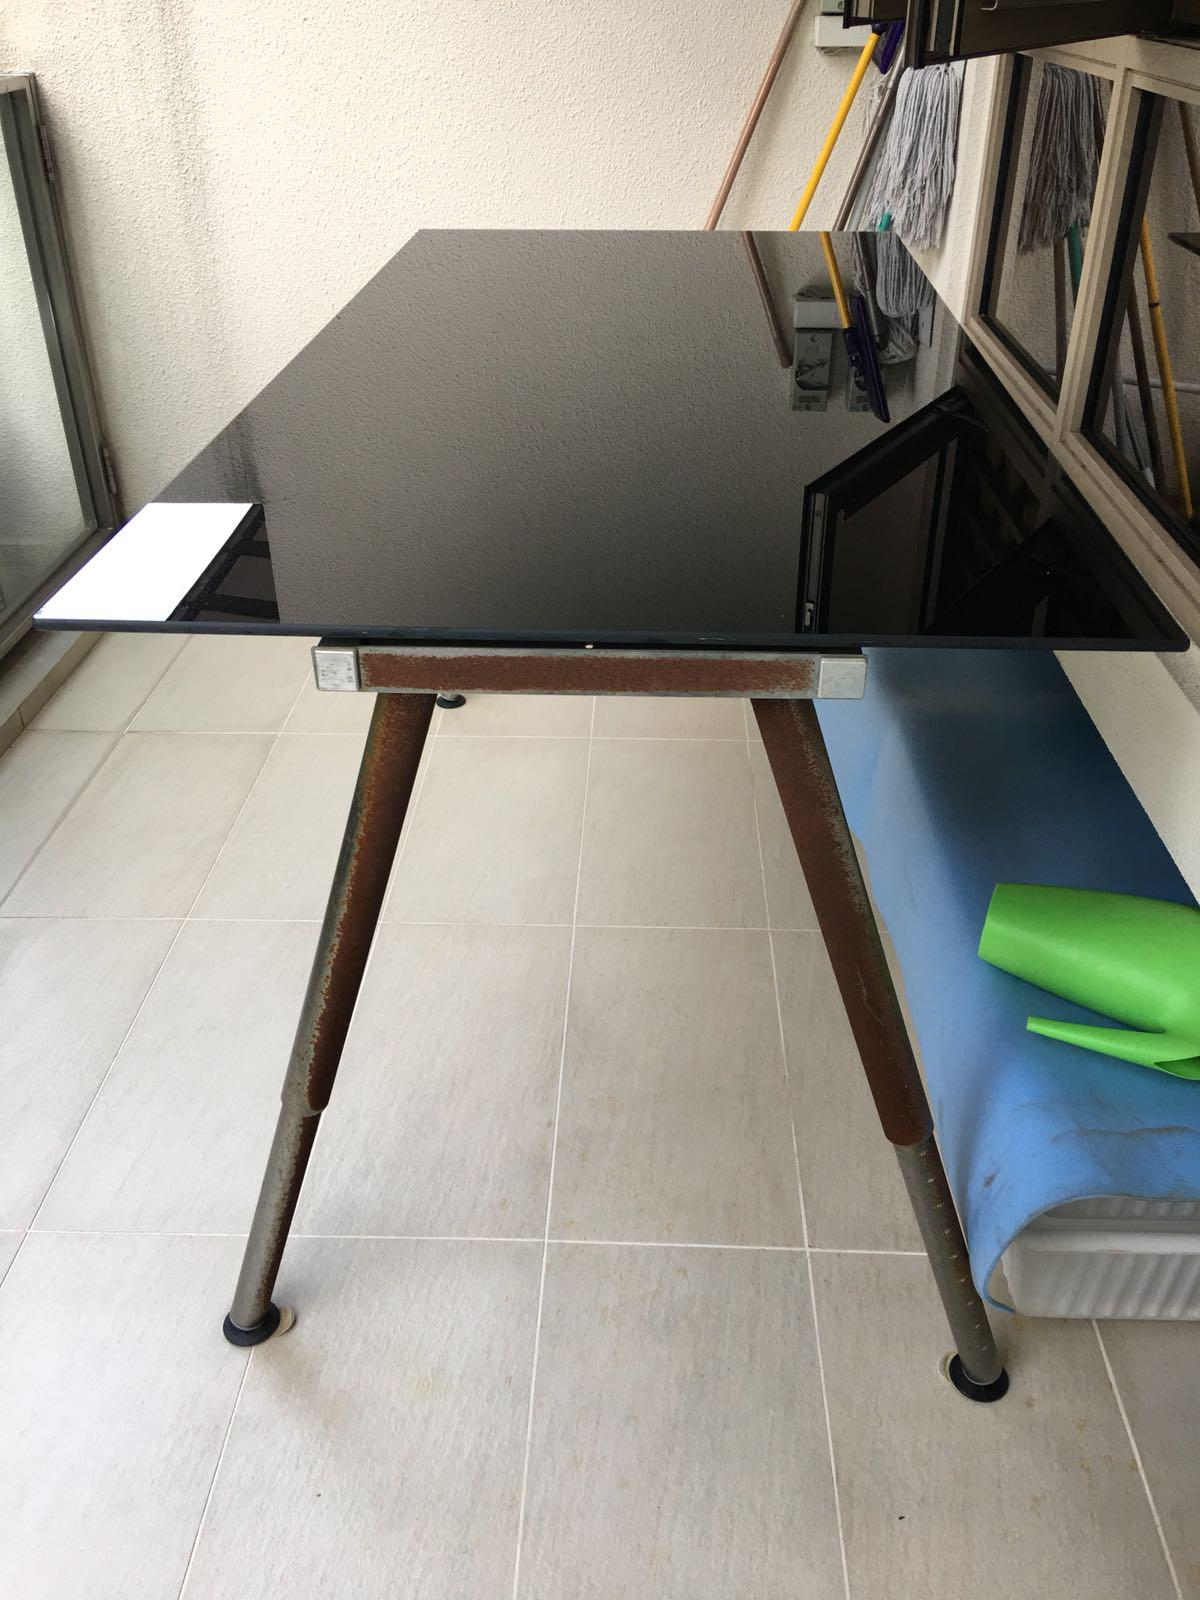 Picture of: Black Tempered Glass Table Study Desk Ikea Furniture Tables Chairs On Carousell